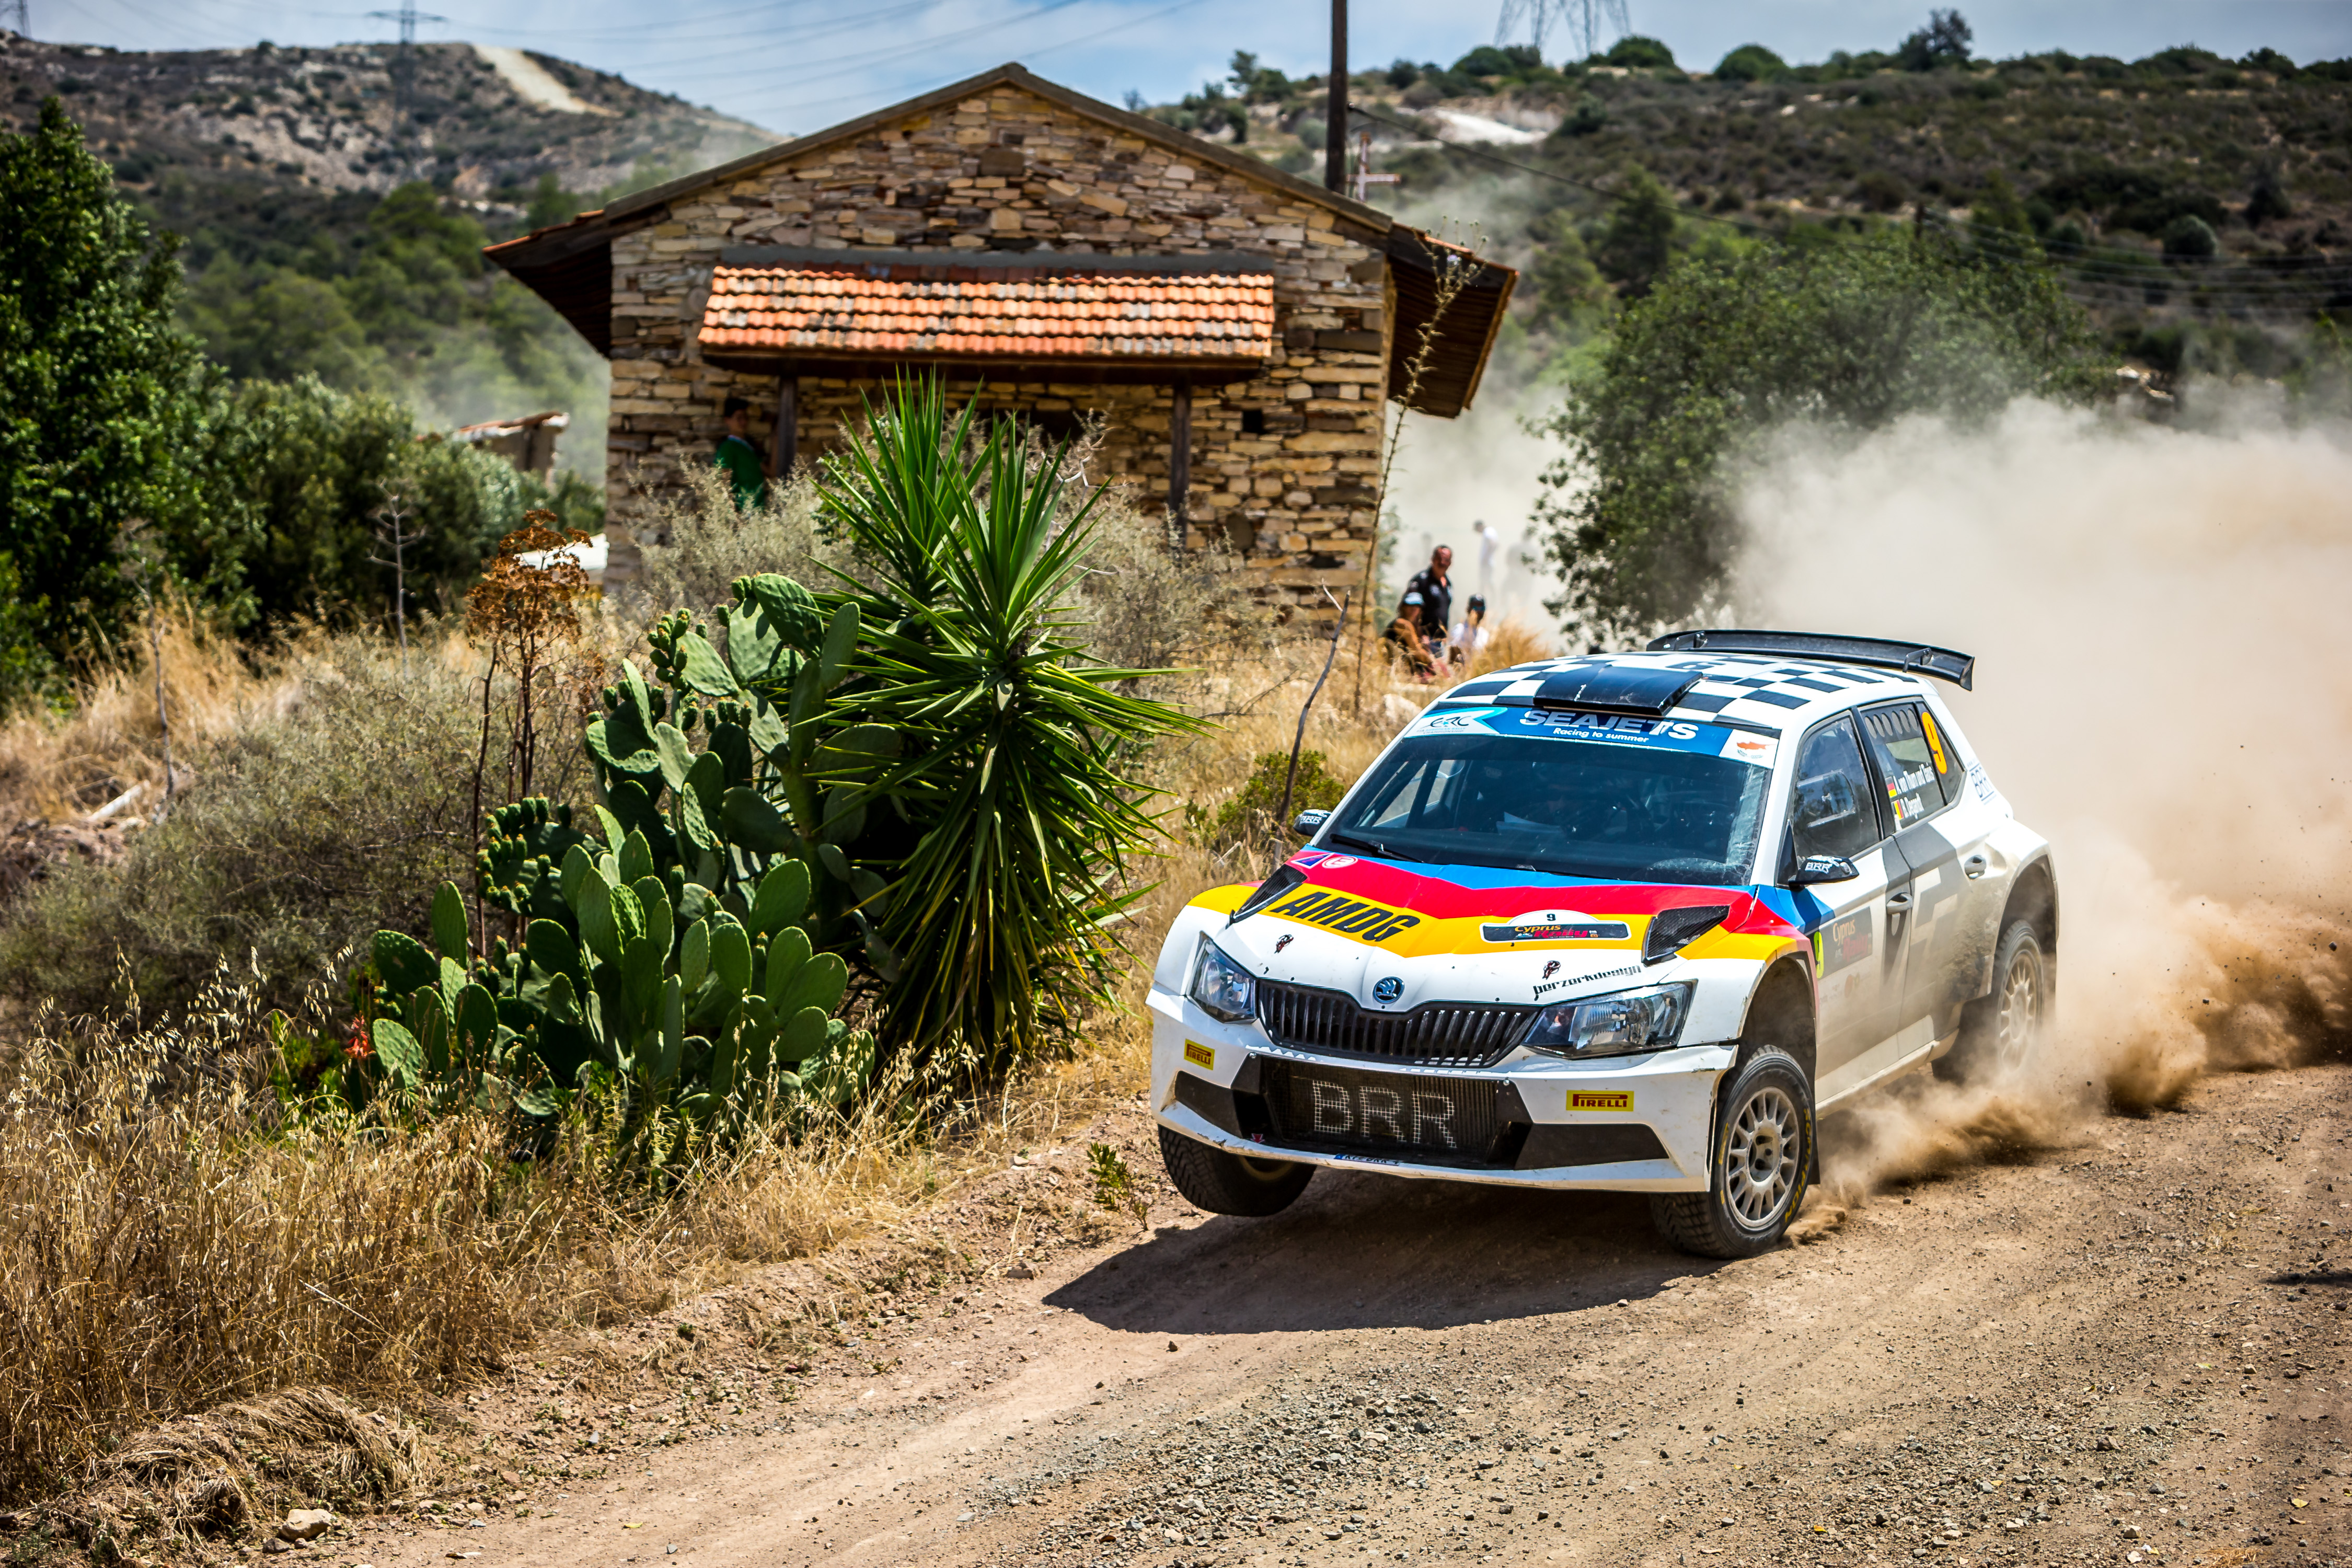 First ERC points of 2018 a big step for von Thurn und Taxis